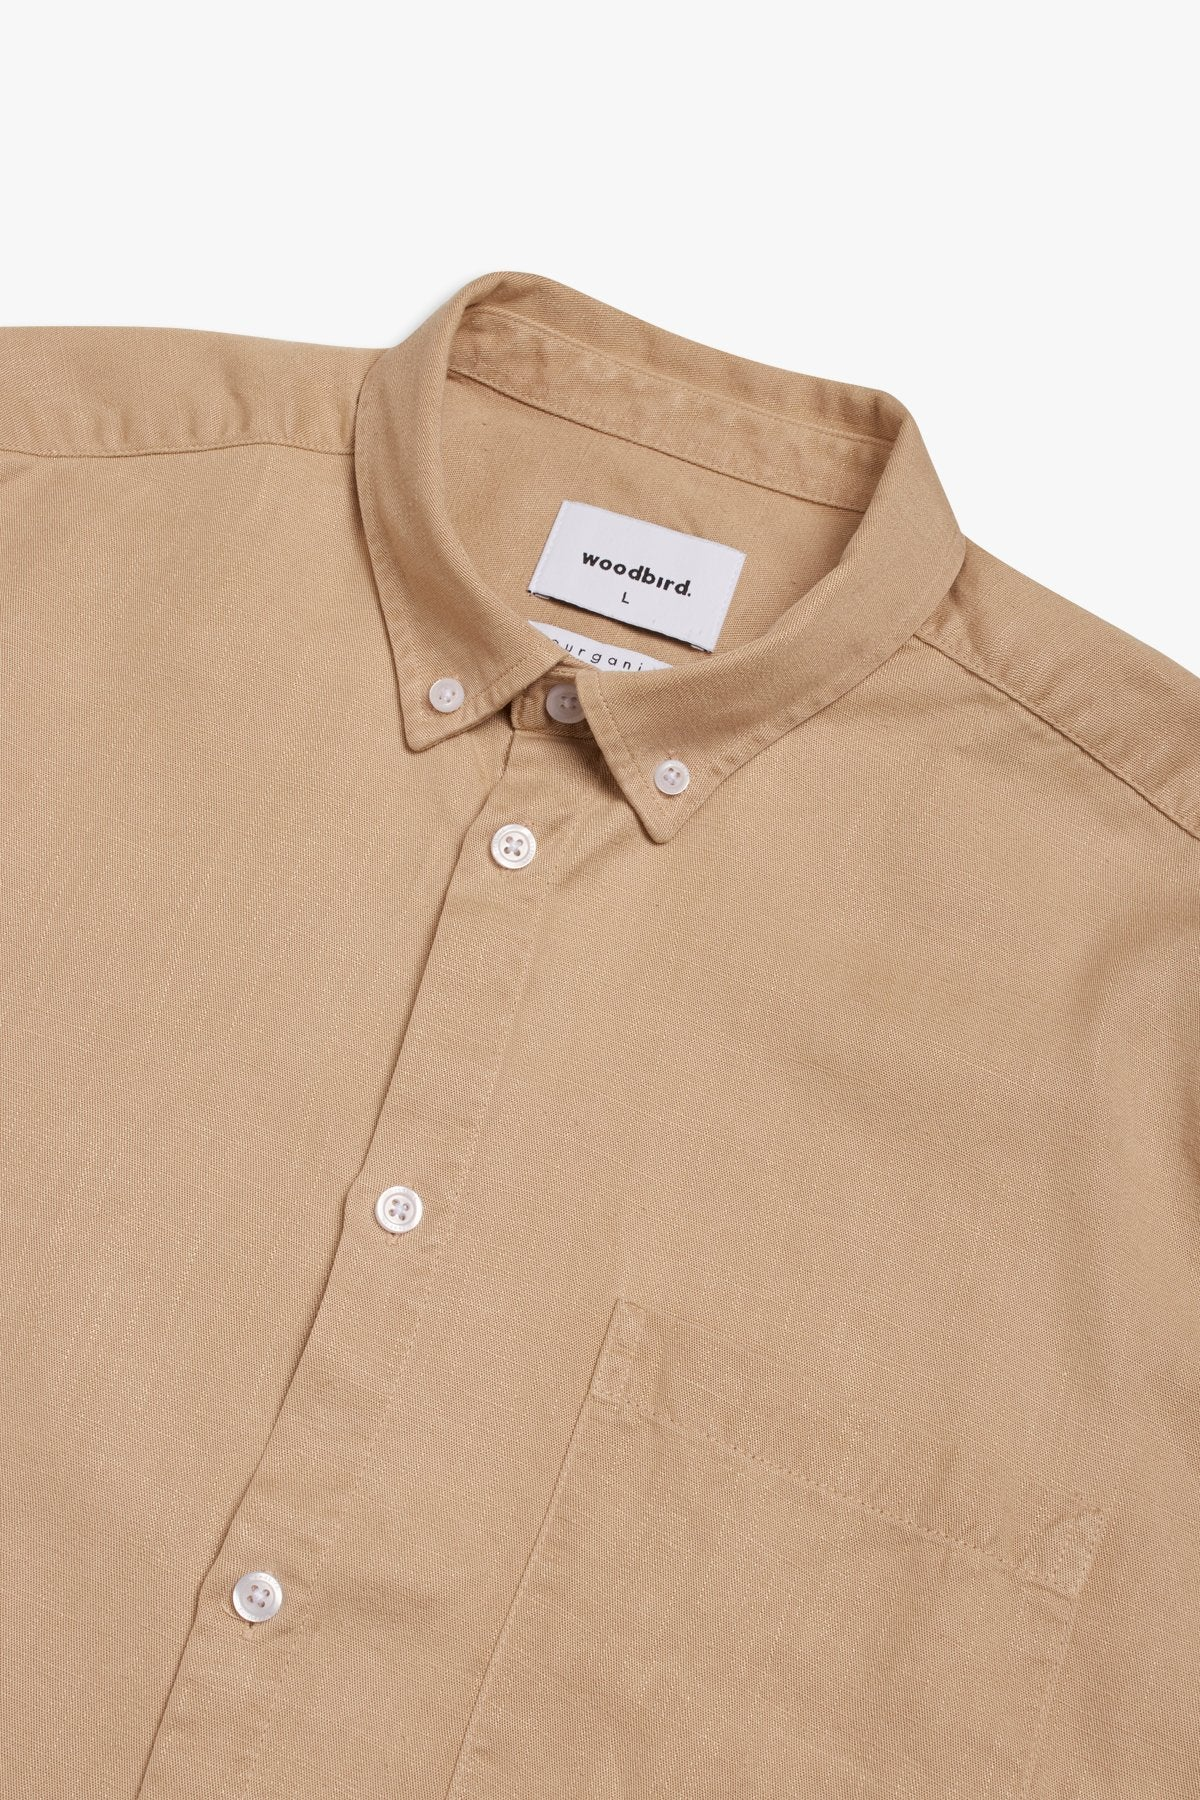 Woodbird  Sike Shirt Ecru / men